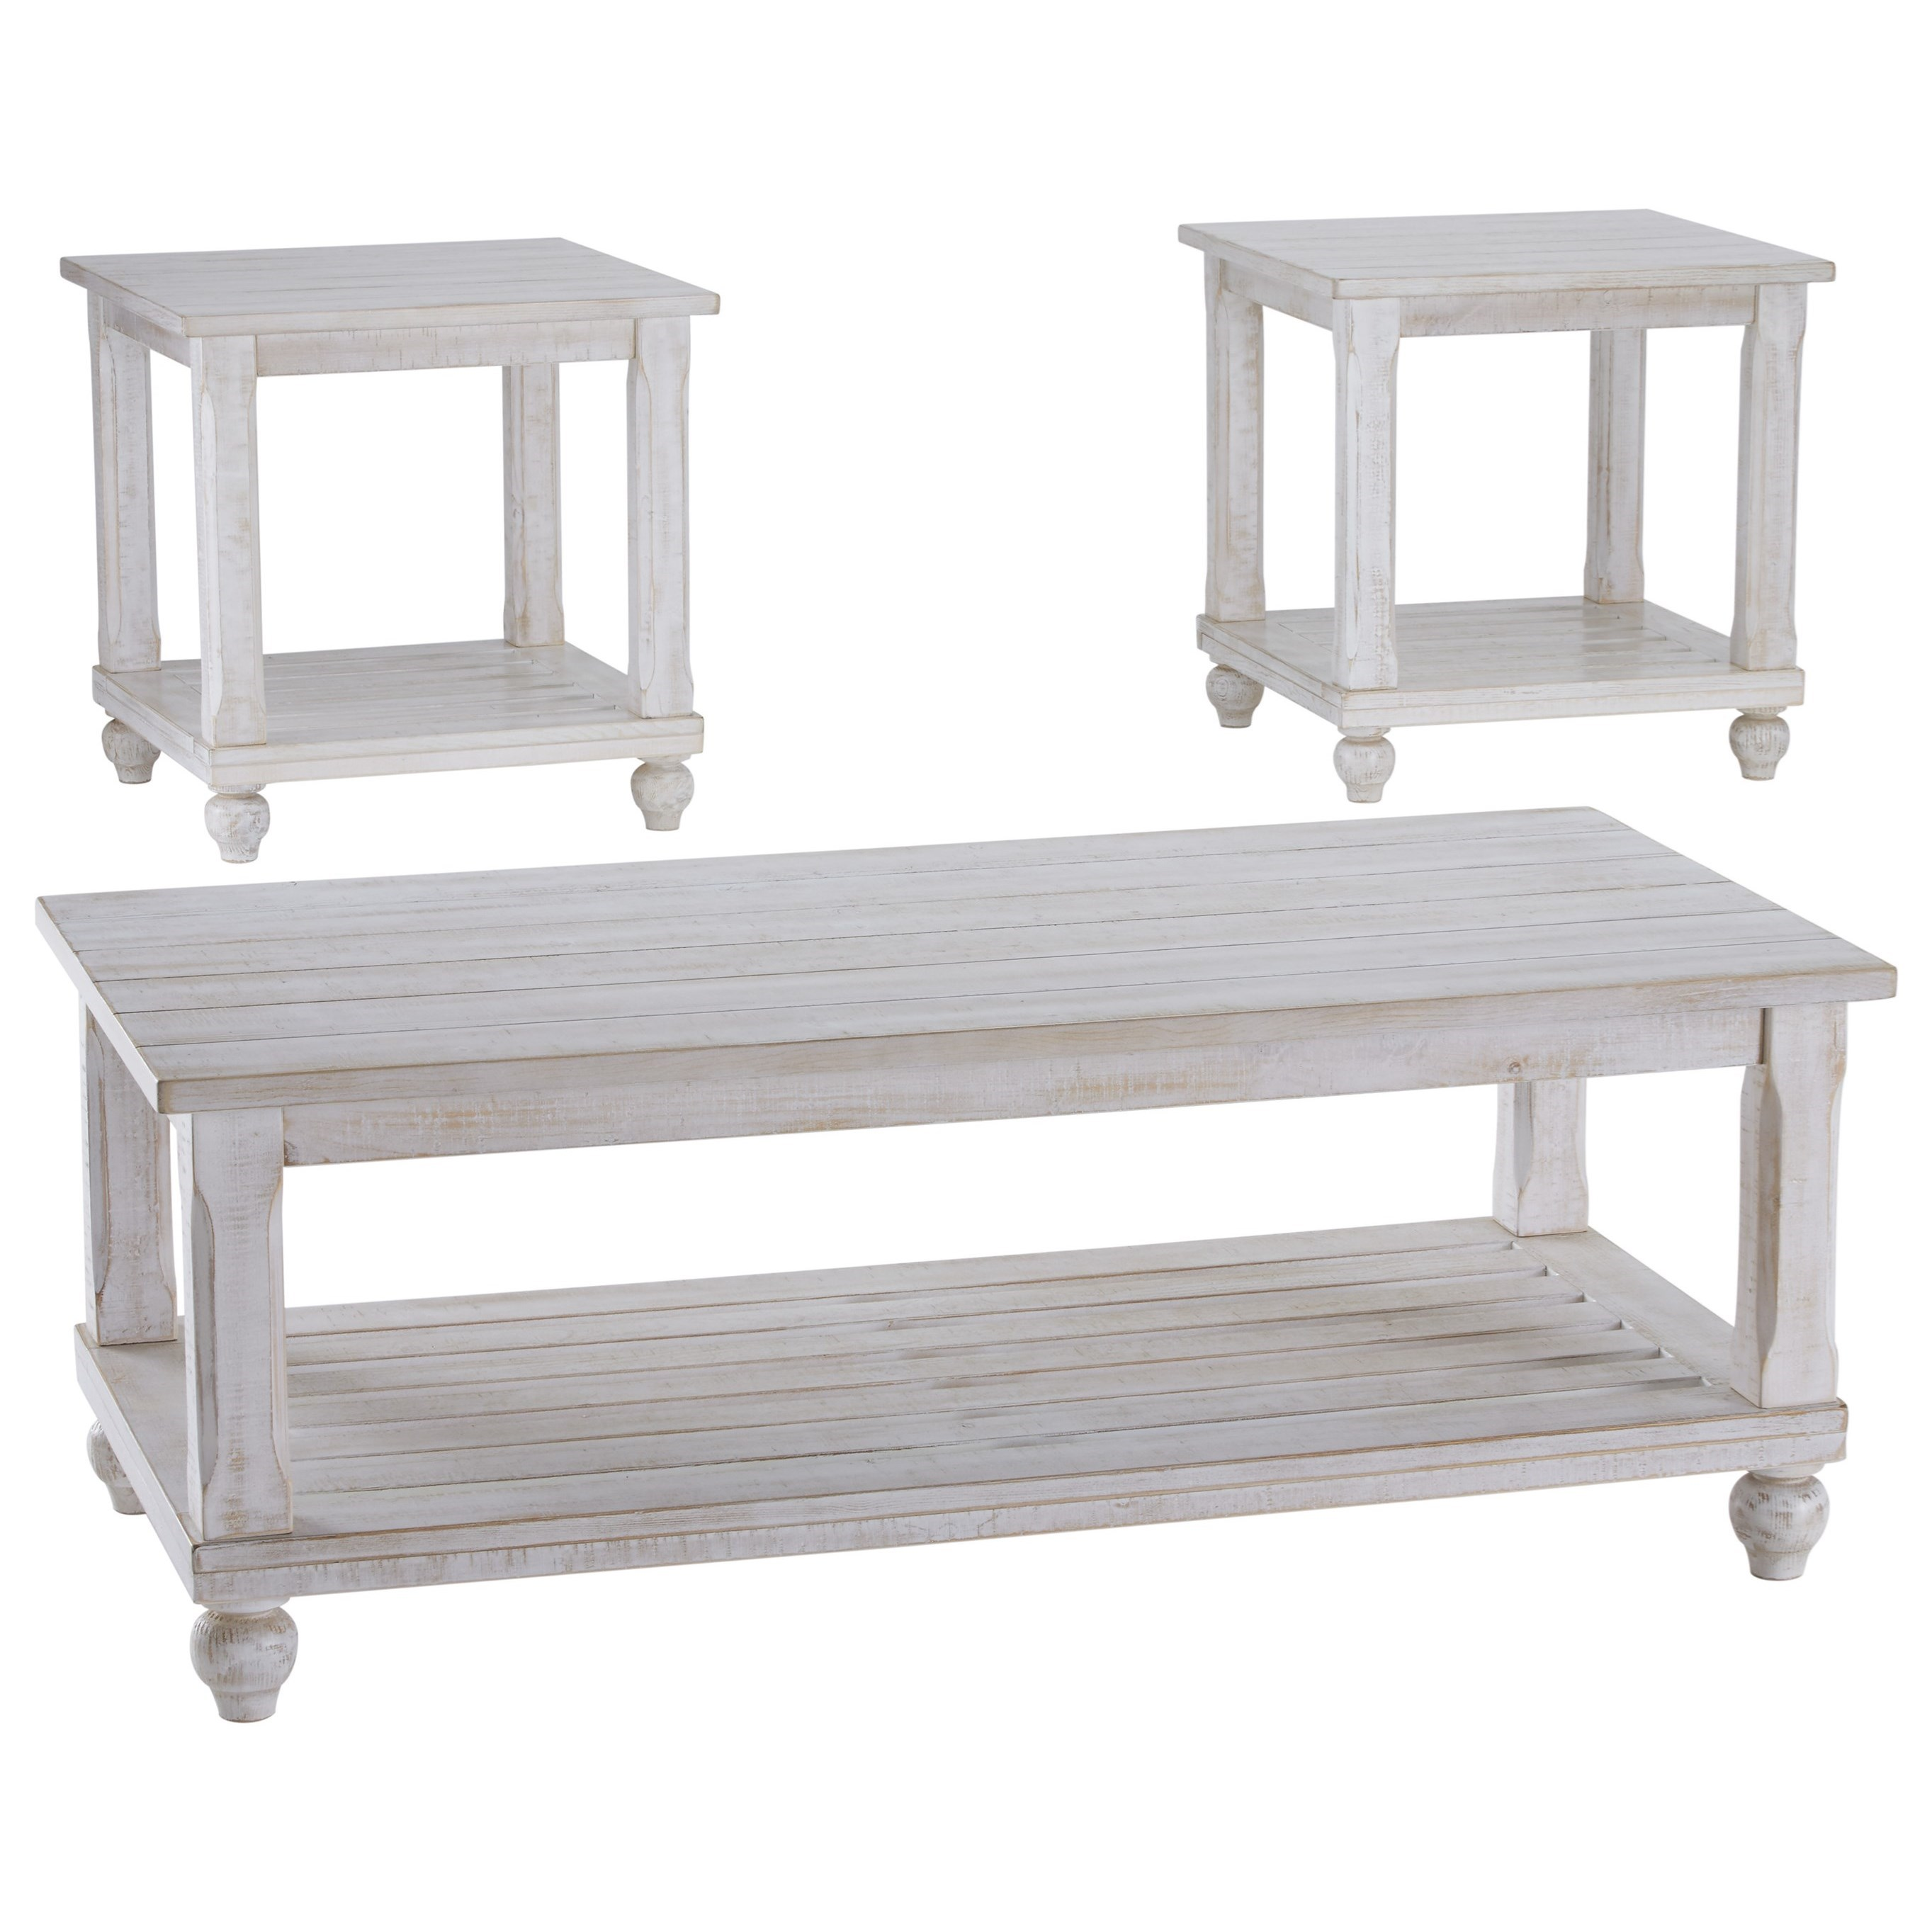 Cloudhurst 3 Piece Occasional Table Set by Ashley (Signature Design) at Johnny Janosik